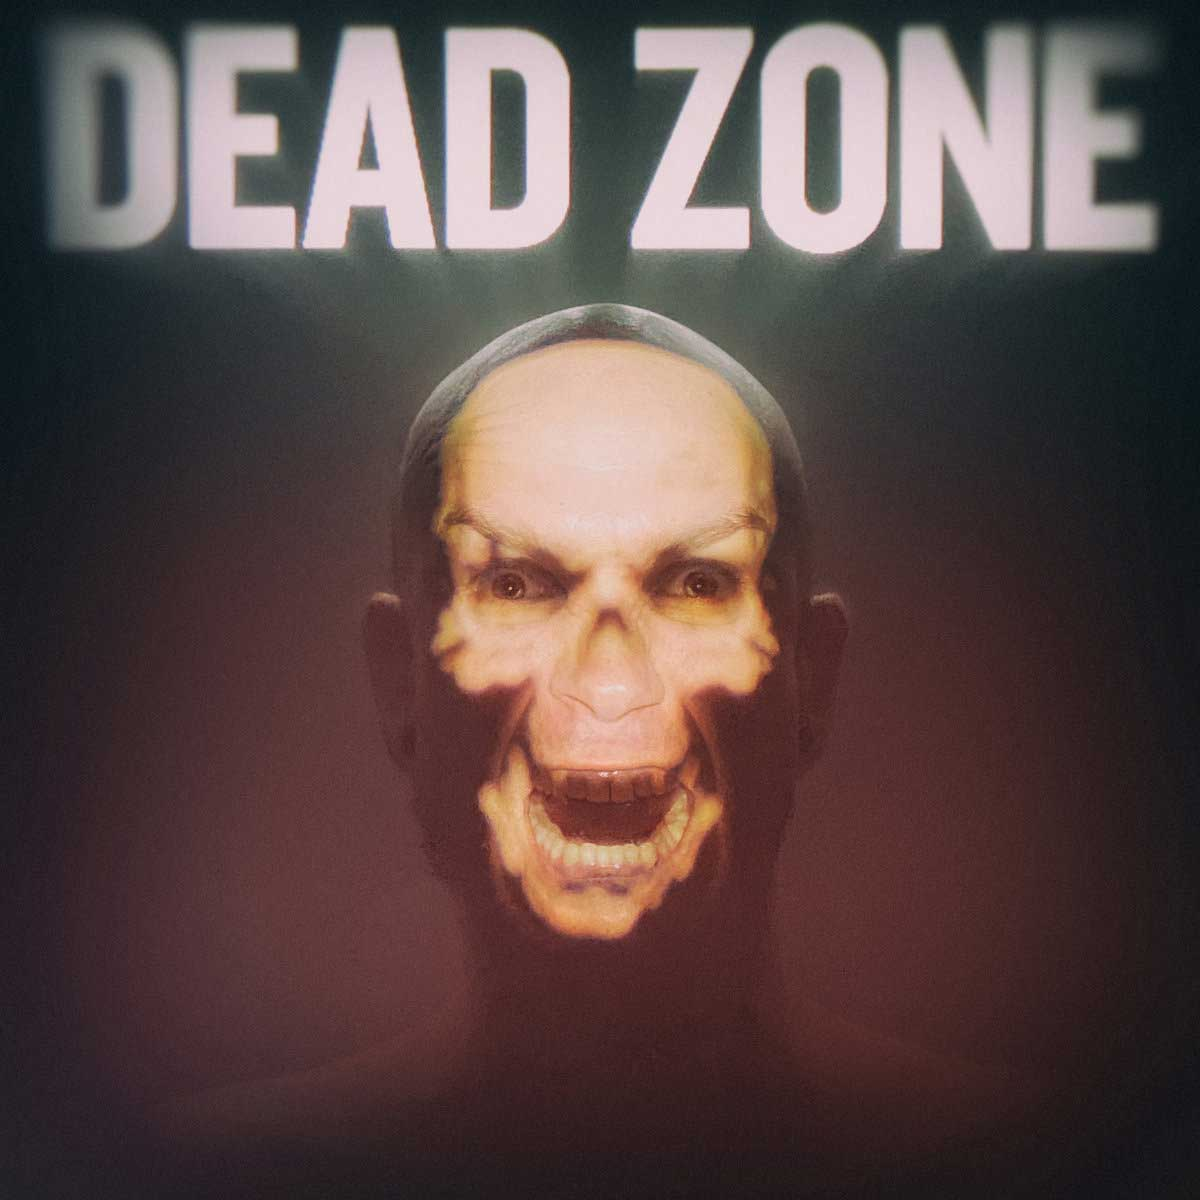 Aesthetic Perfection - Dead Zone - Aesthetic Perfection - Dead Zone